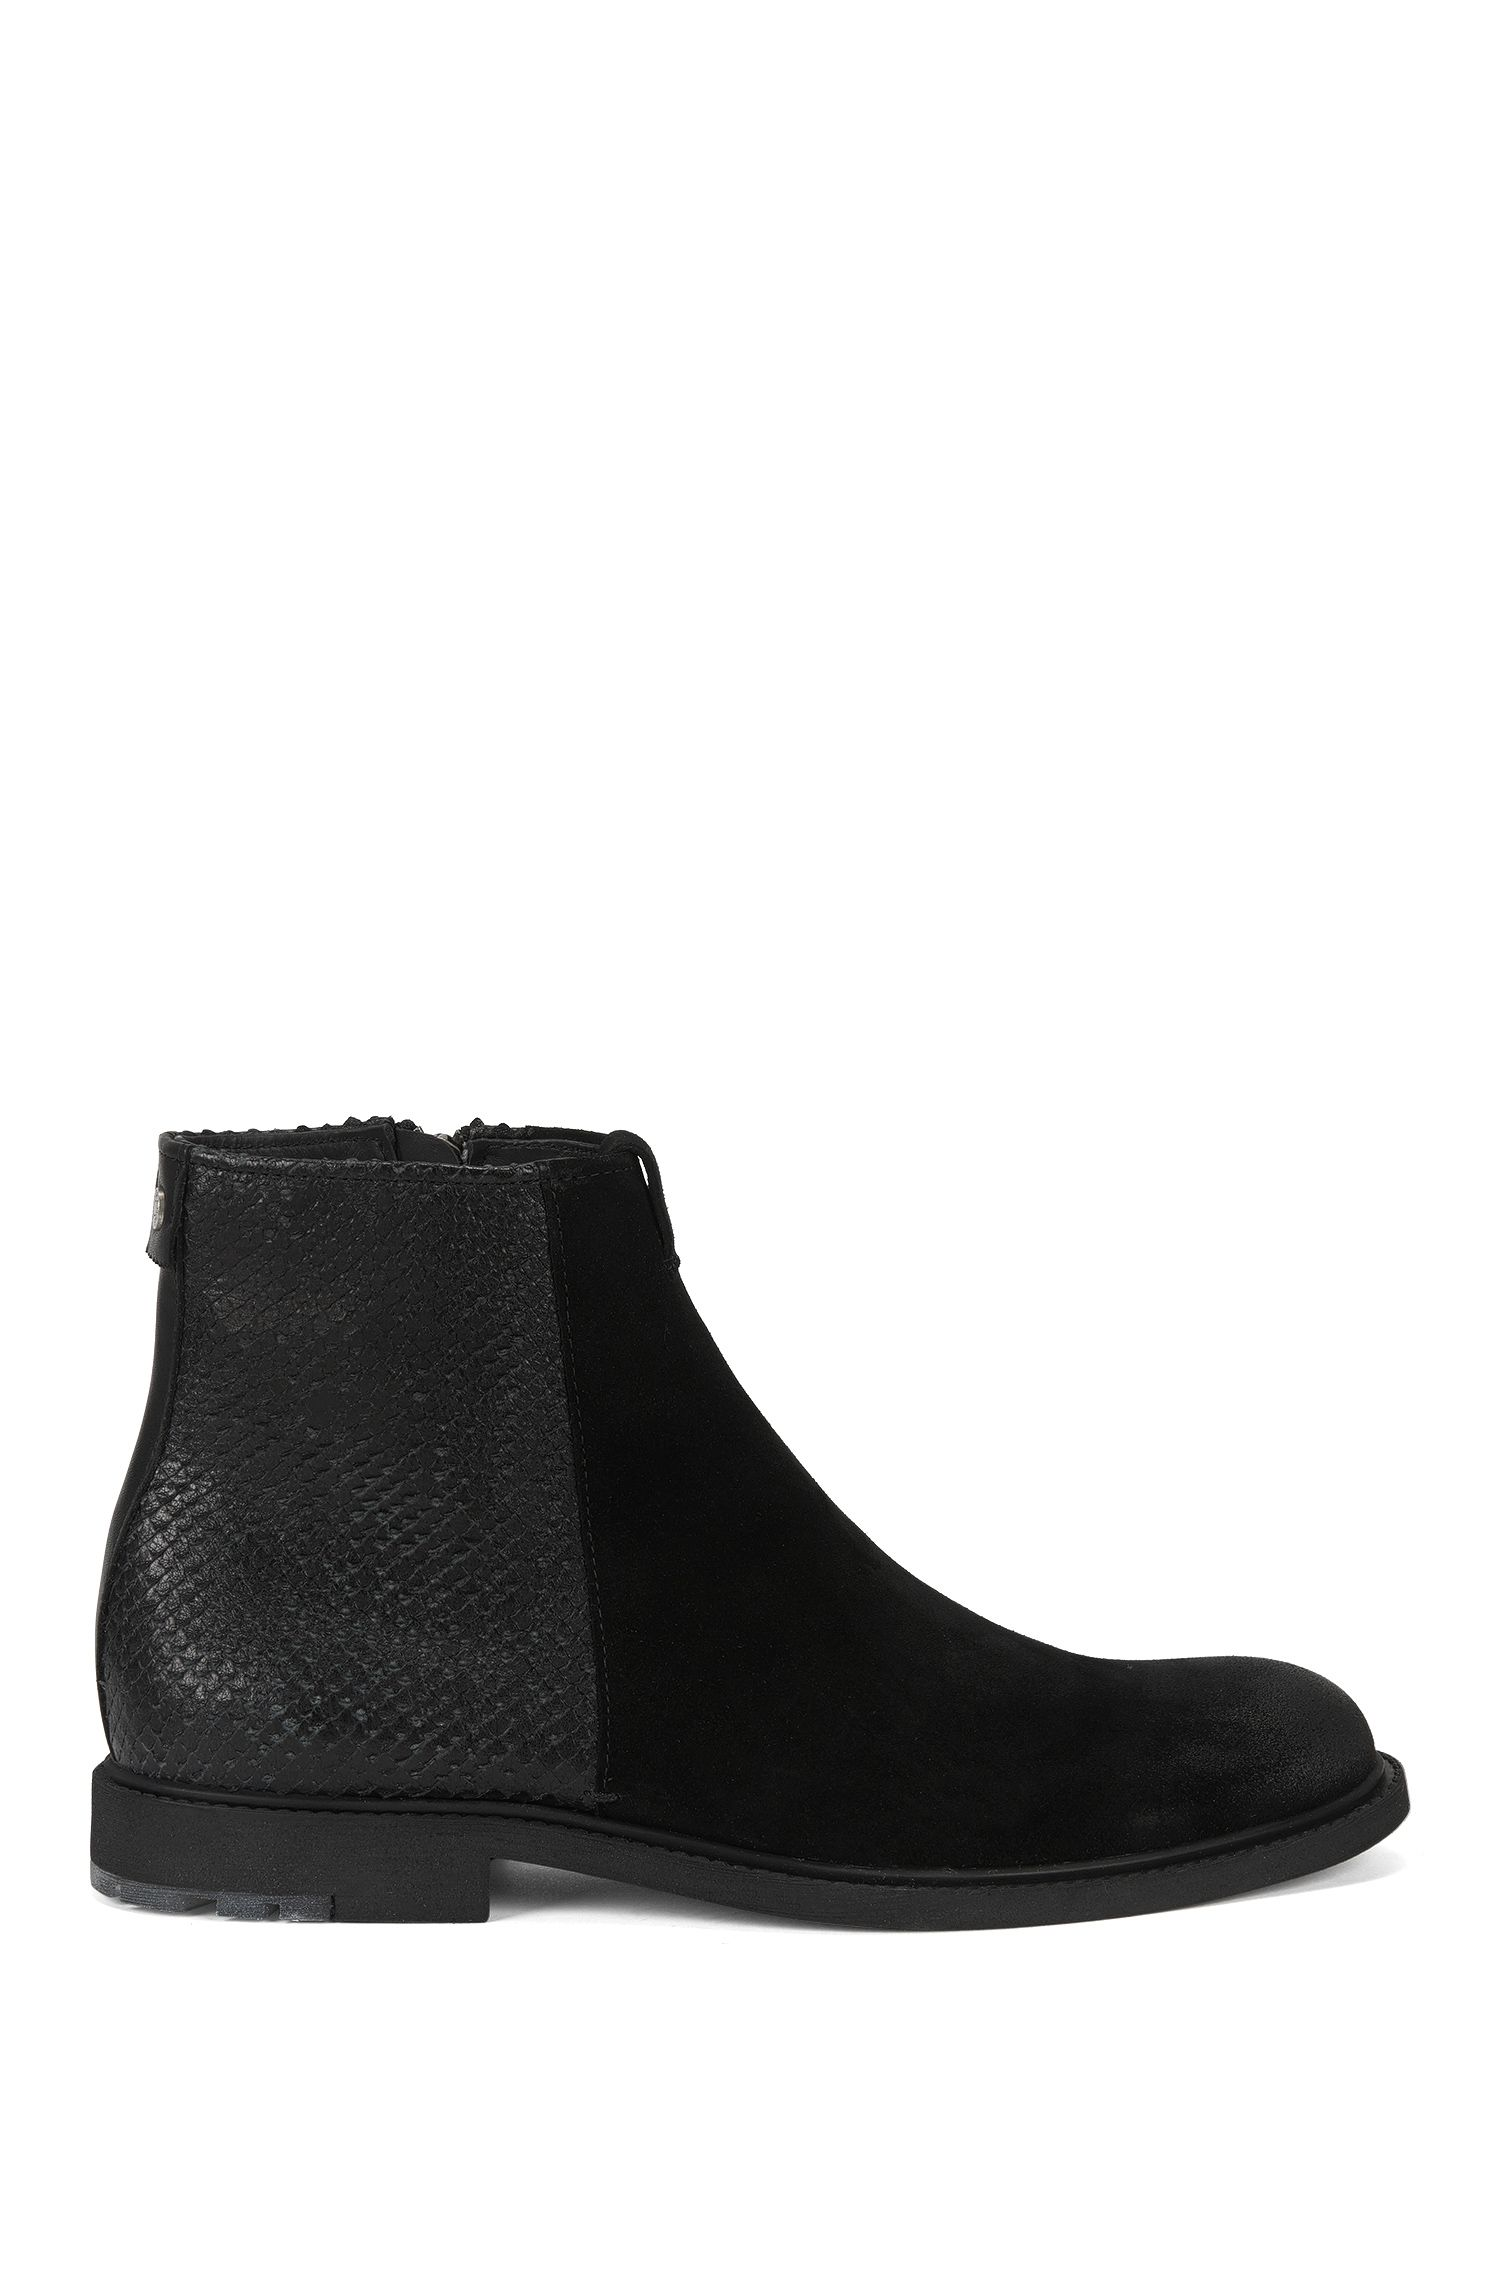 Ankle boots in washed suede and lasered leather